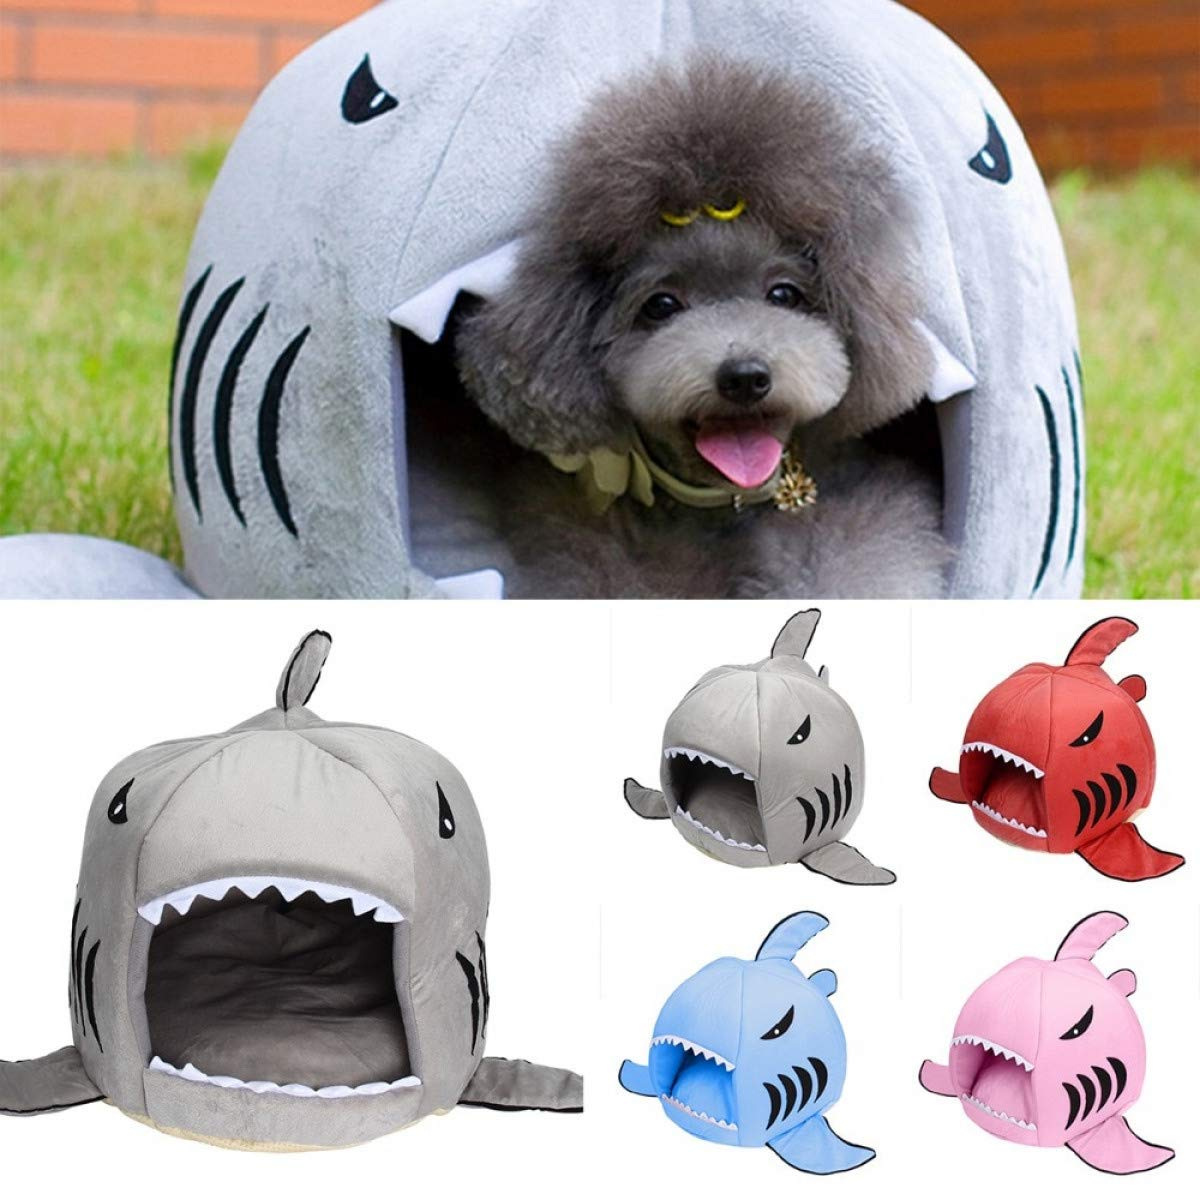 Amazon.com : FLAMINGO_STORE Dog Bed cat Bed Shaped Dog House Pet Sleeping Bag Warm Soft Dog Kennel Cat Bed Cat House cama perro Puppy House Indoor Pet ...